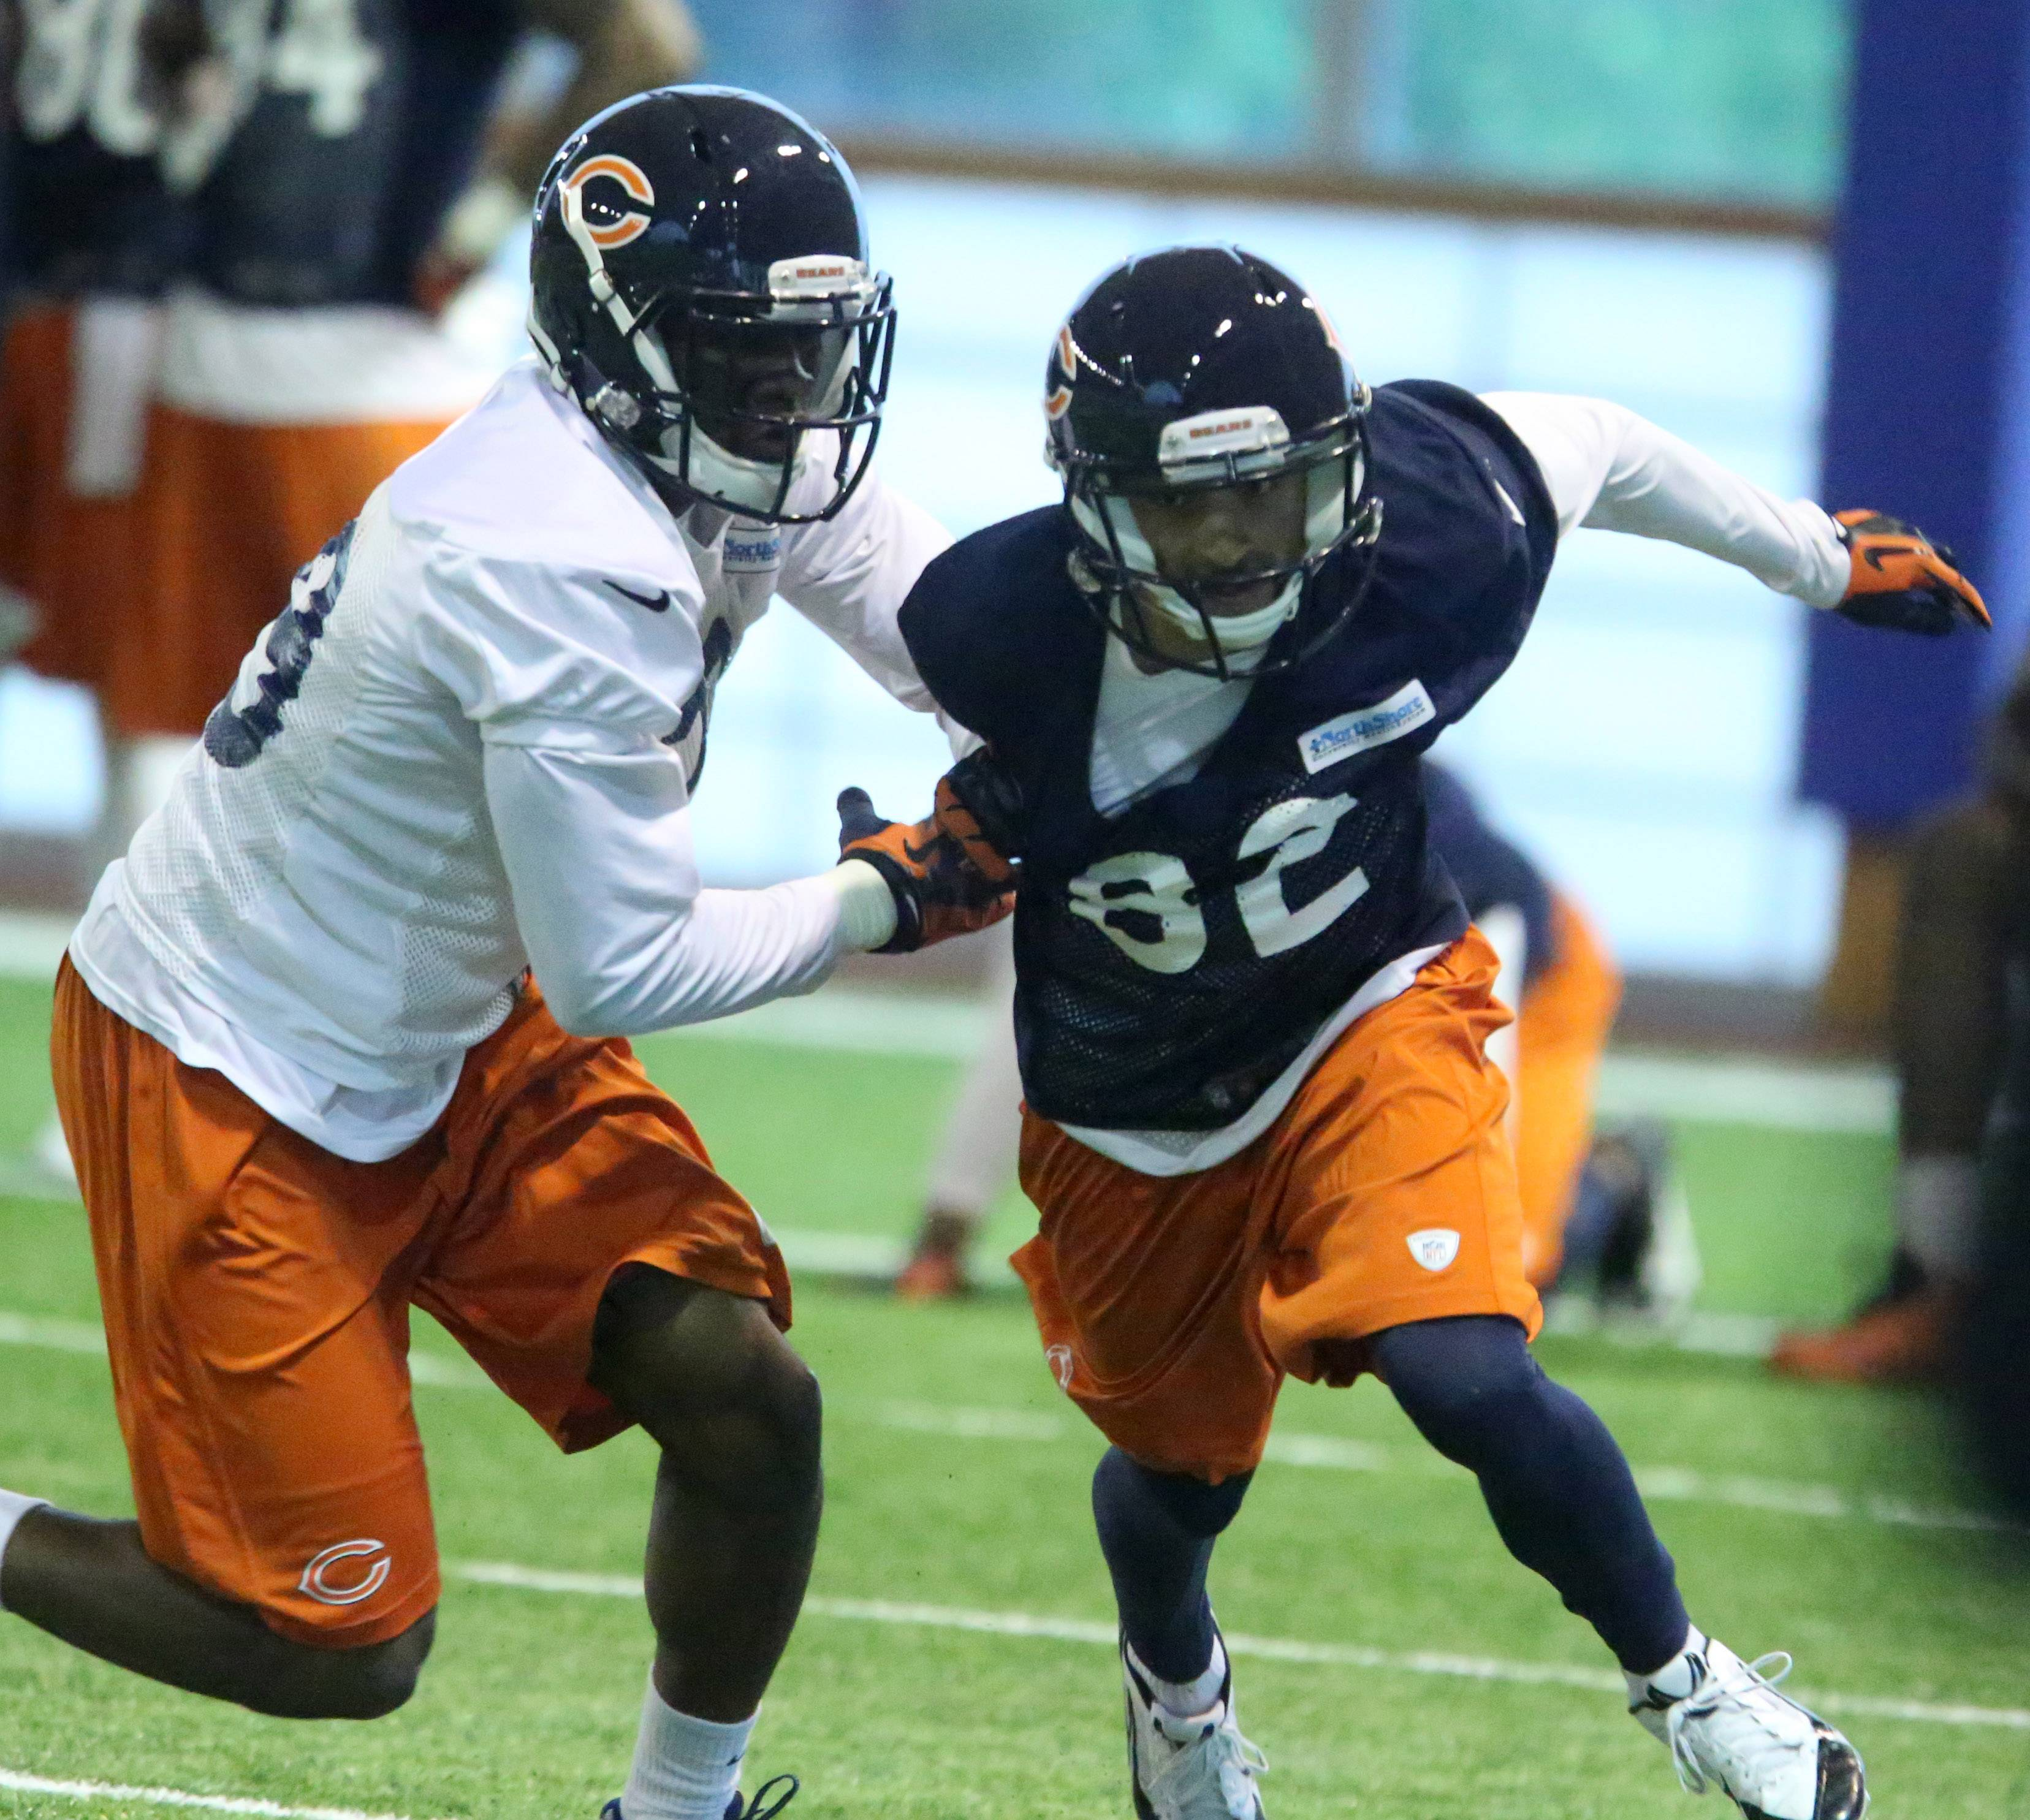 Wide receiver Chris Williams, right, is a primary candidate to take over as Bears kick-return specialist now that Devin Hester has moved on to the Atlanta Falcons.